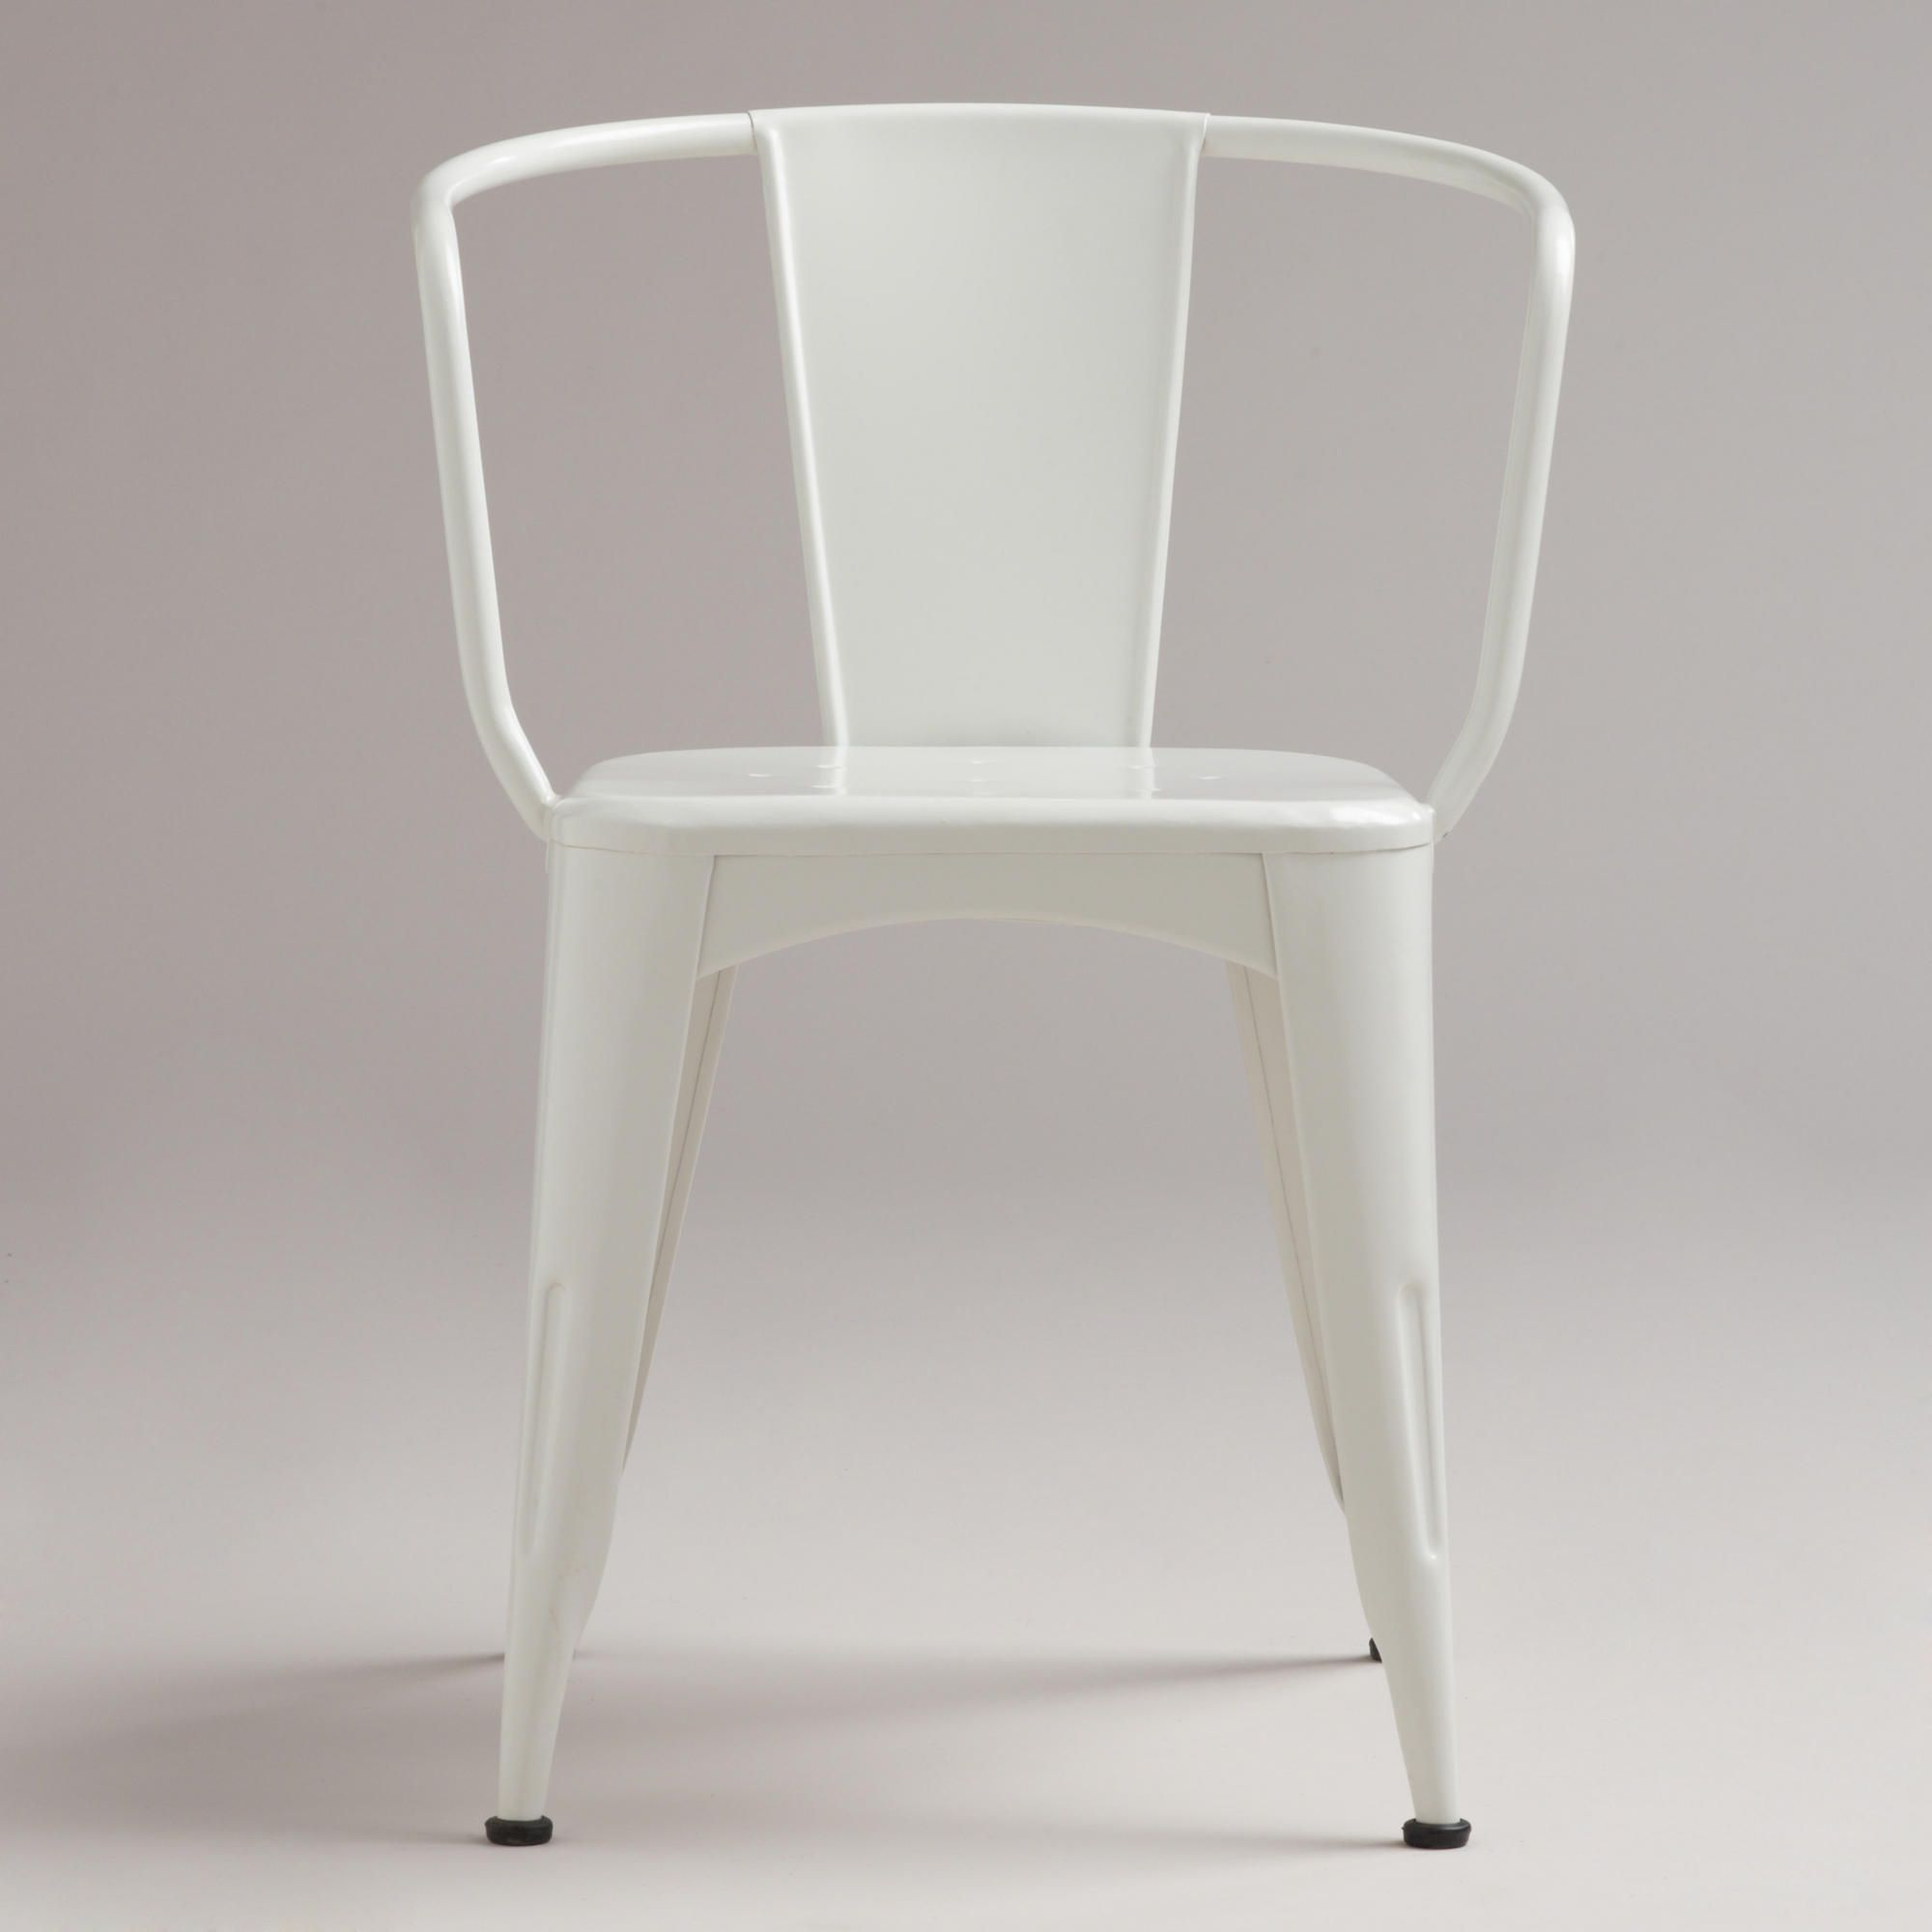 White Metal Tub Chair | World Market - on sale for $55 | For Outside ...